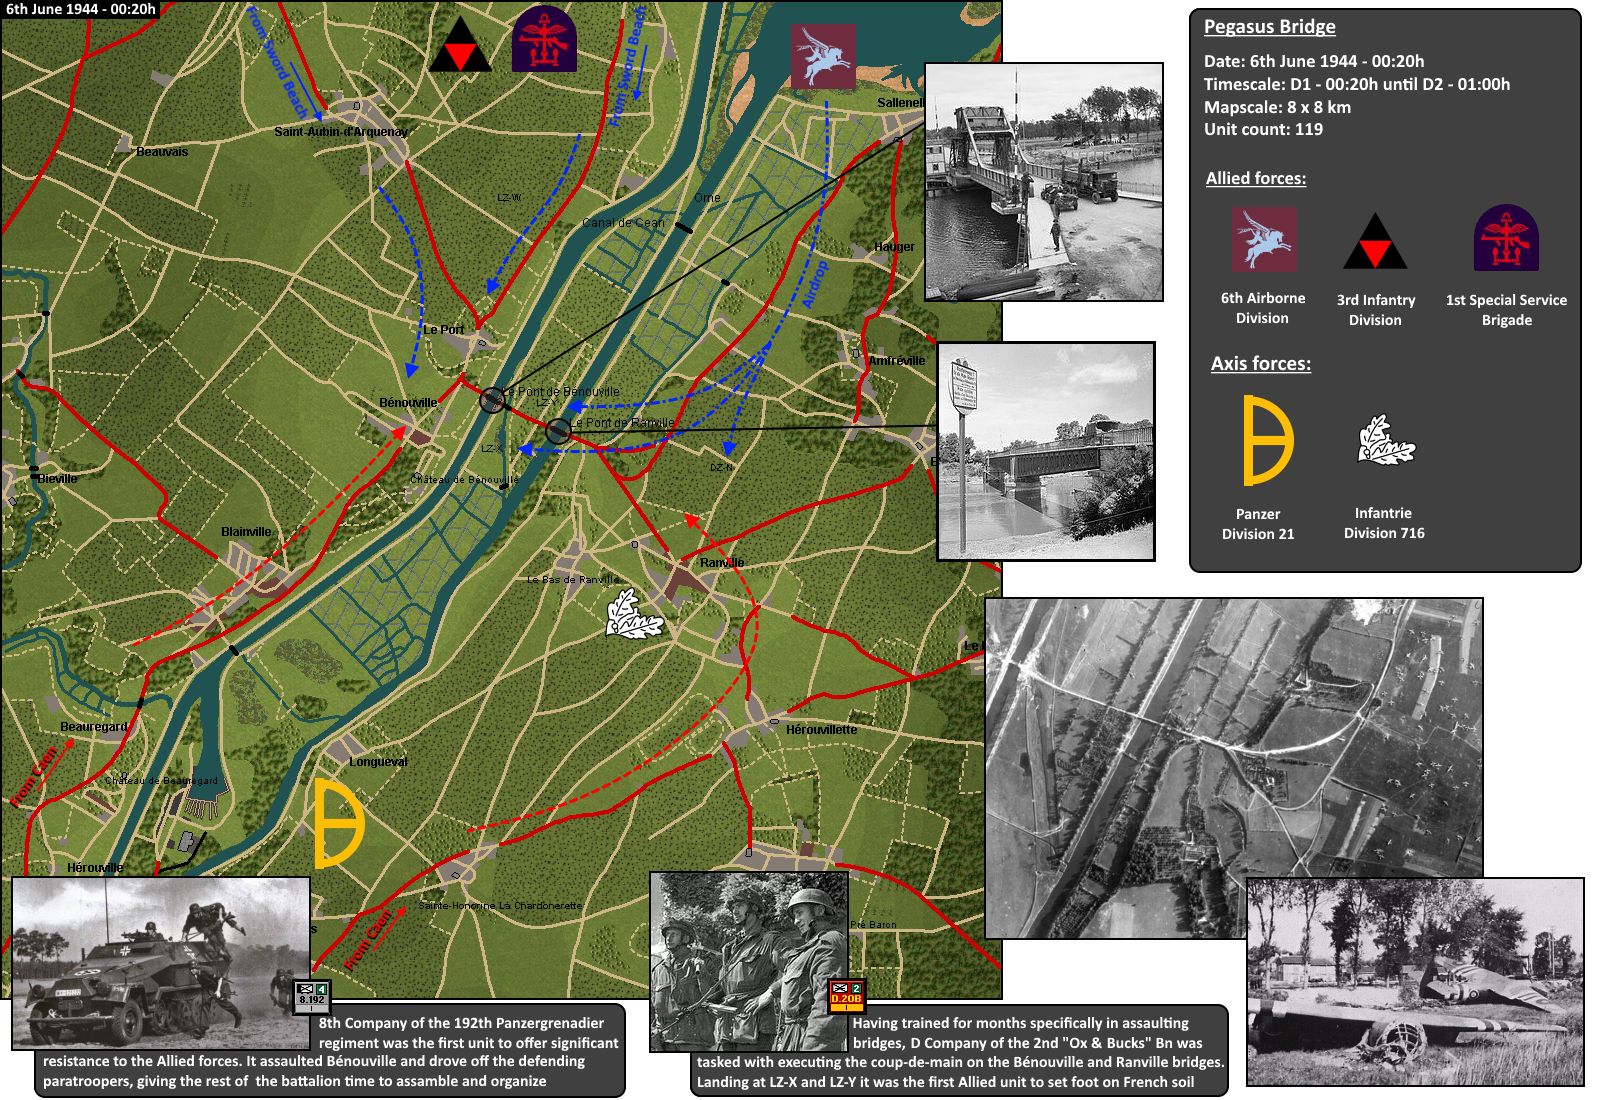 Pegasus Bridge Overview 4.png